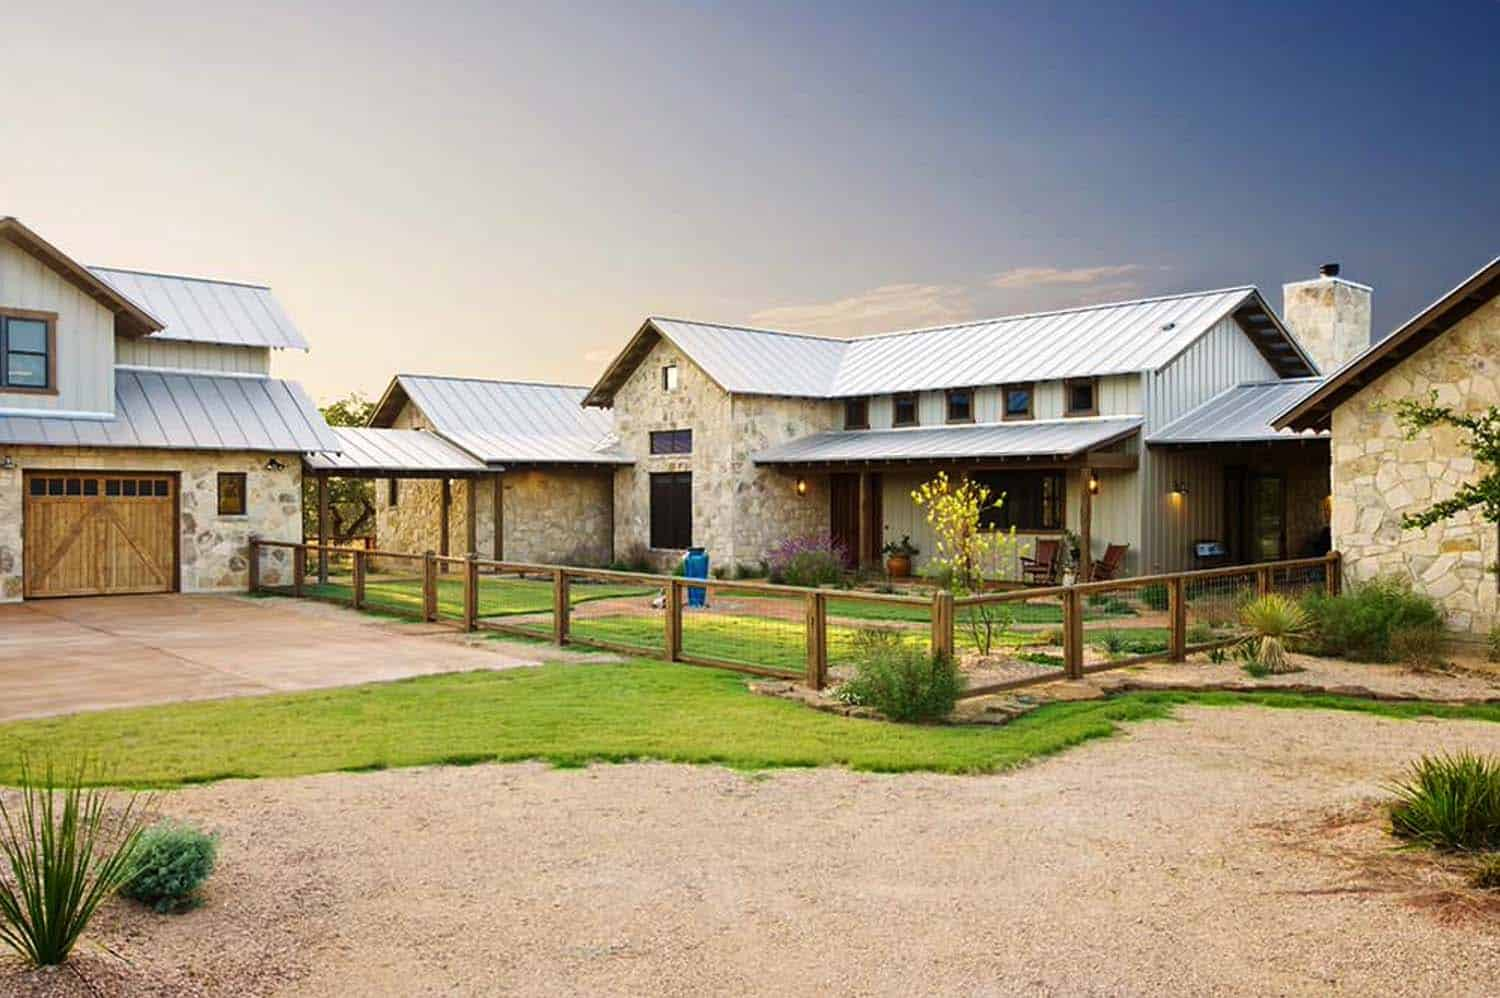 Rustic ranch house designed for family gatherings in texas for Texas farm houses